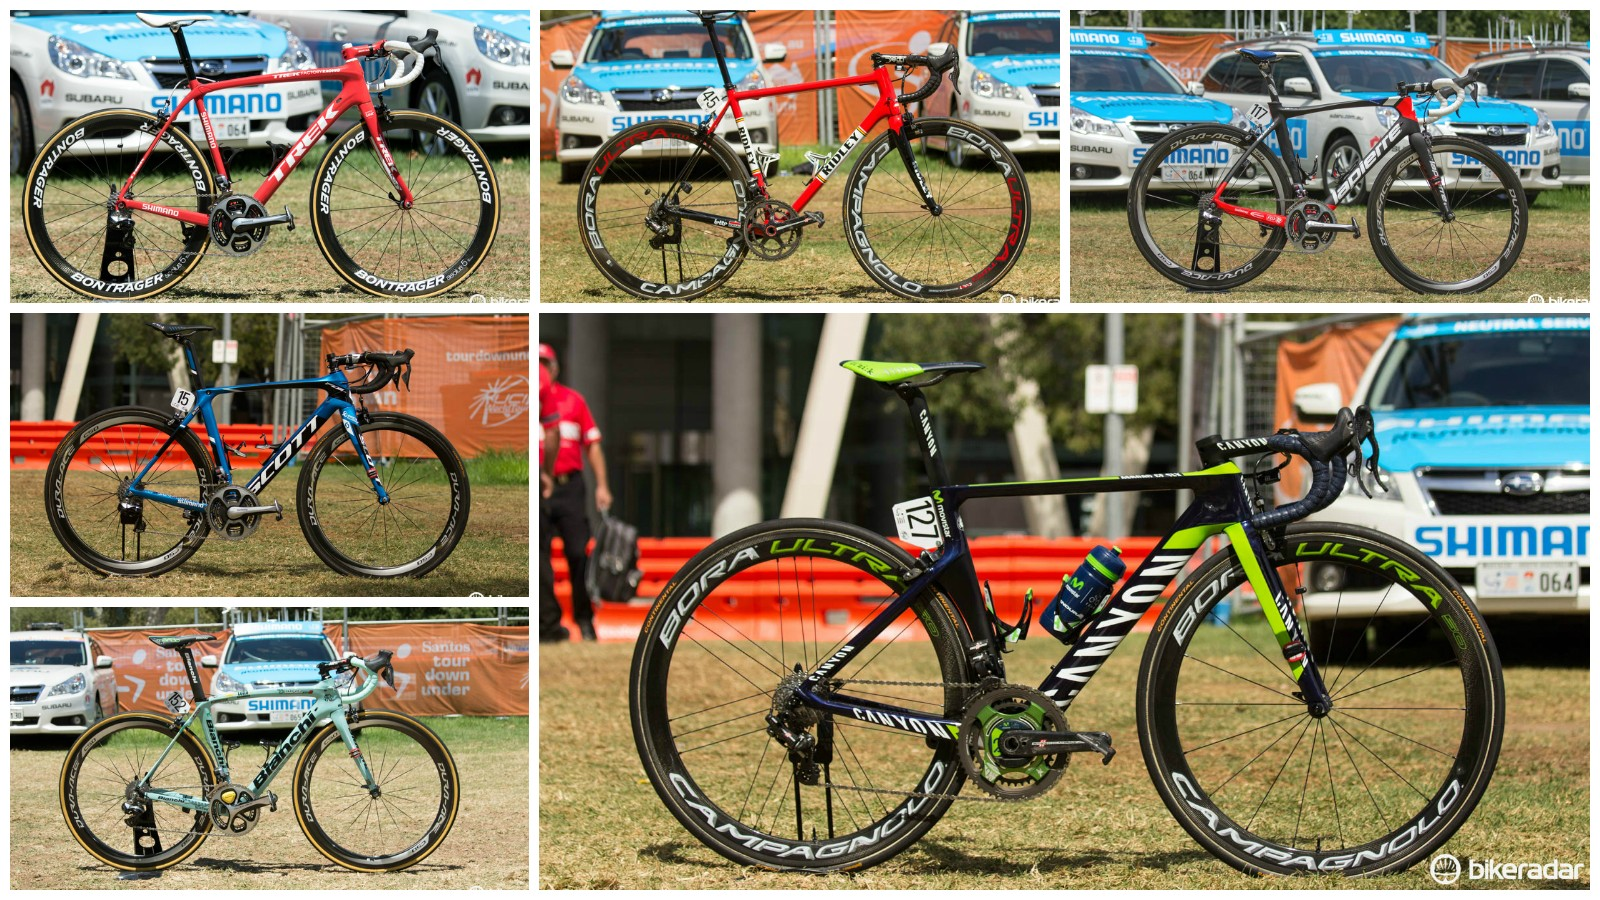 Bikes of the WorldTour - as seen at Tour Down Under 2015